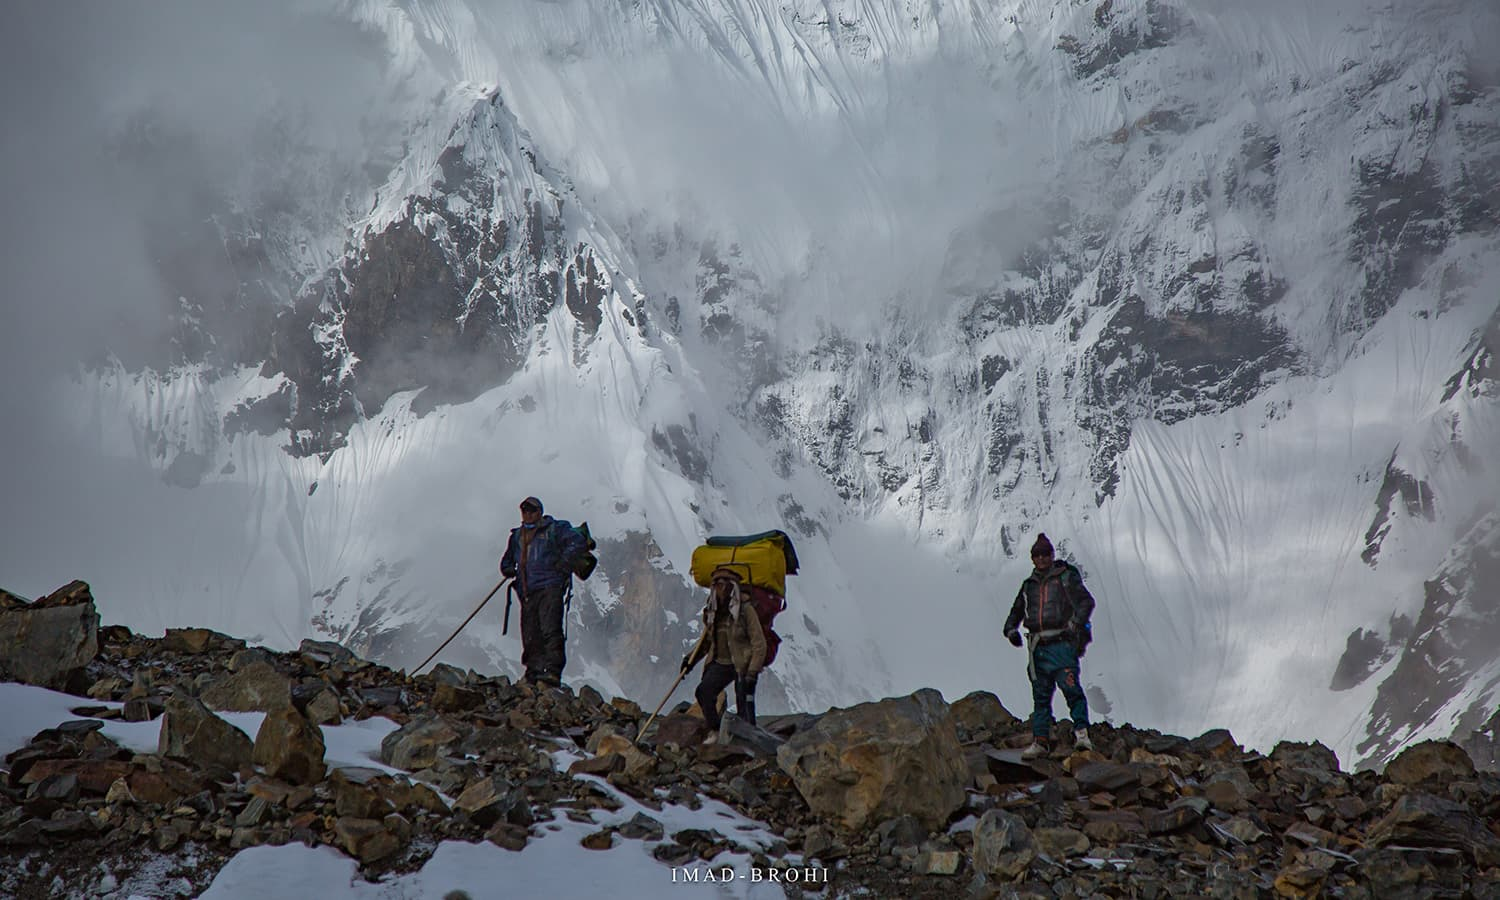 The team crosses the crevasse safely.